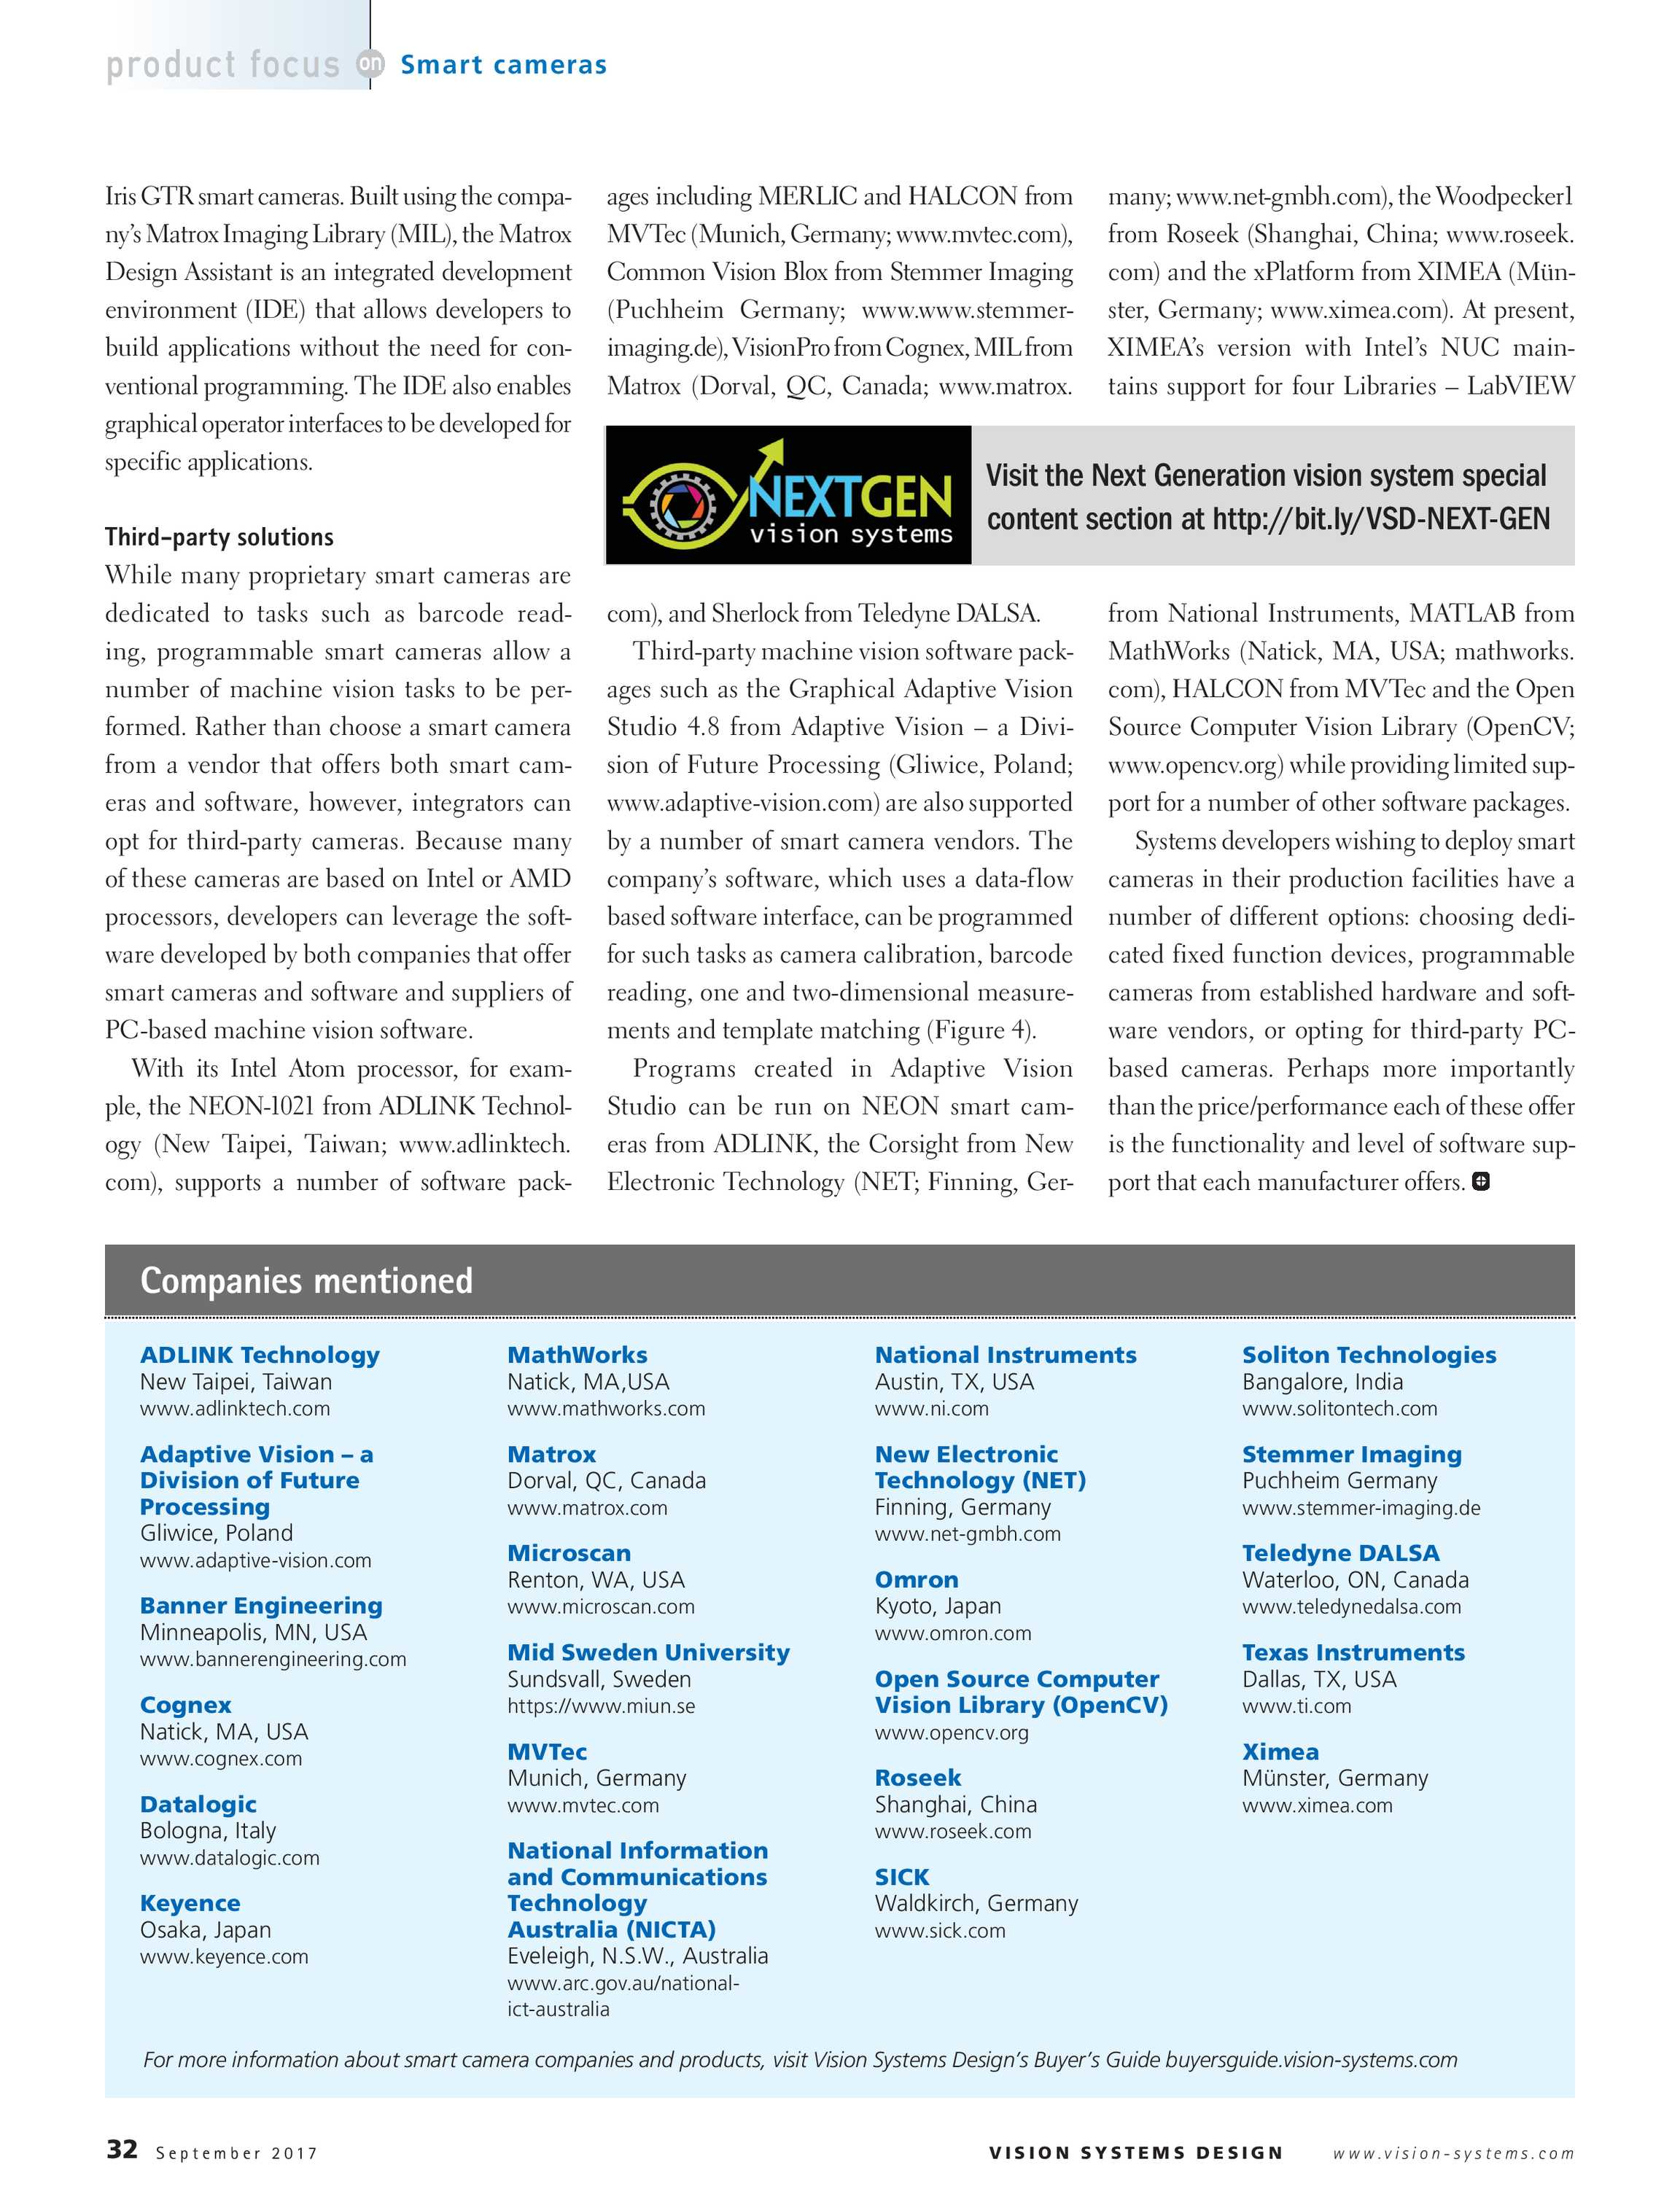 Vision Systems - September 2017 - page 32